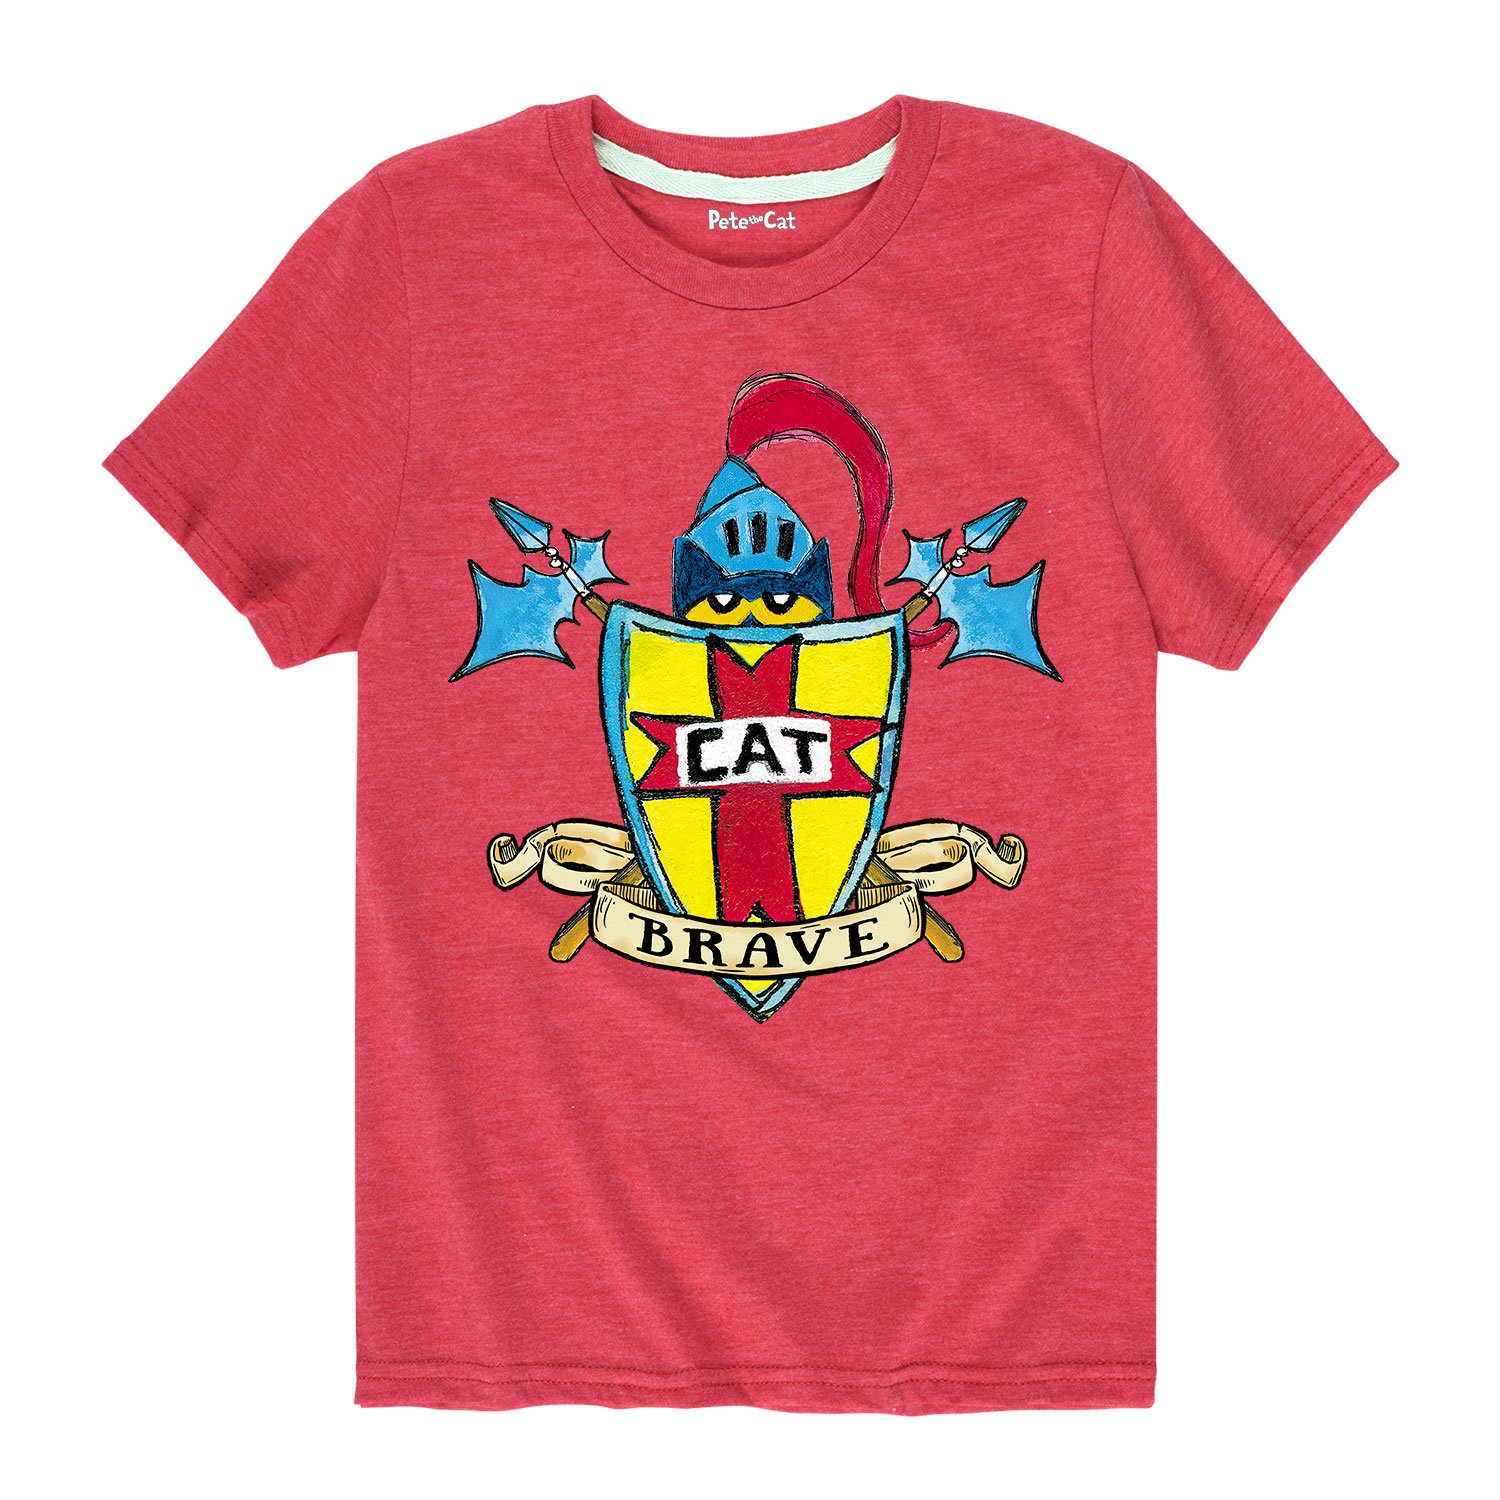 Pete the Cat Brave Shield Toddler Short Sleeve Tee